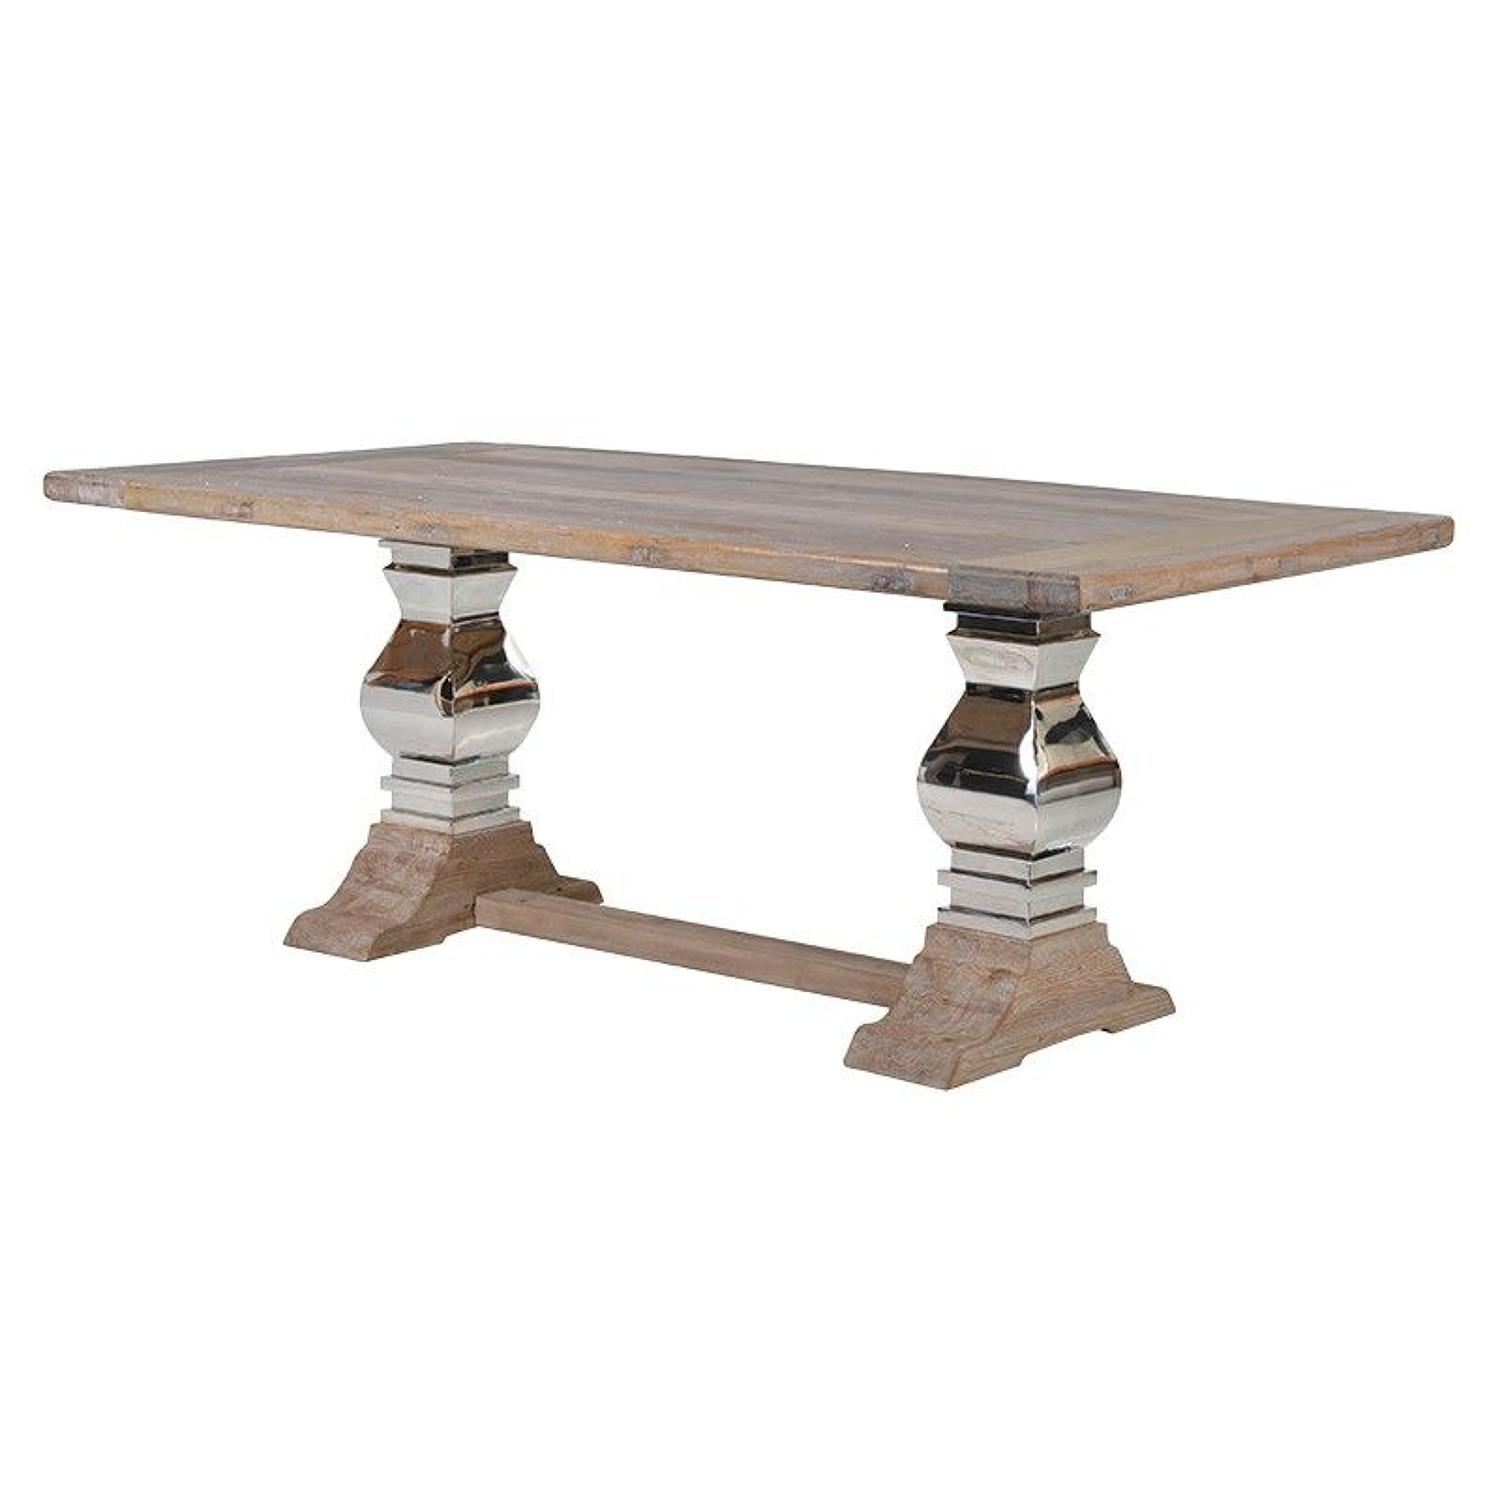 Elm wood and stainless steel table